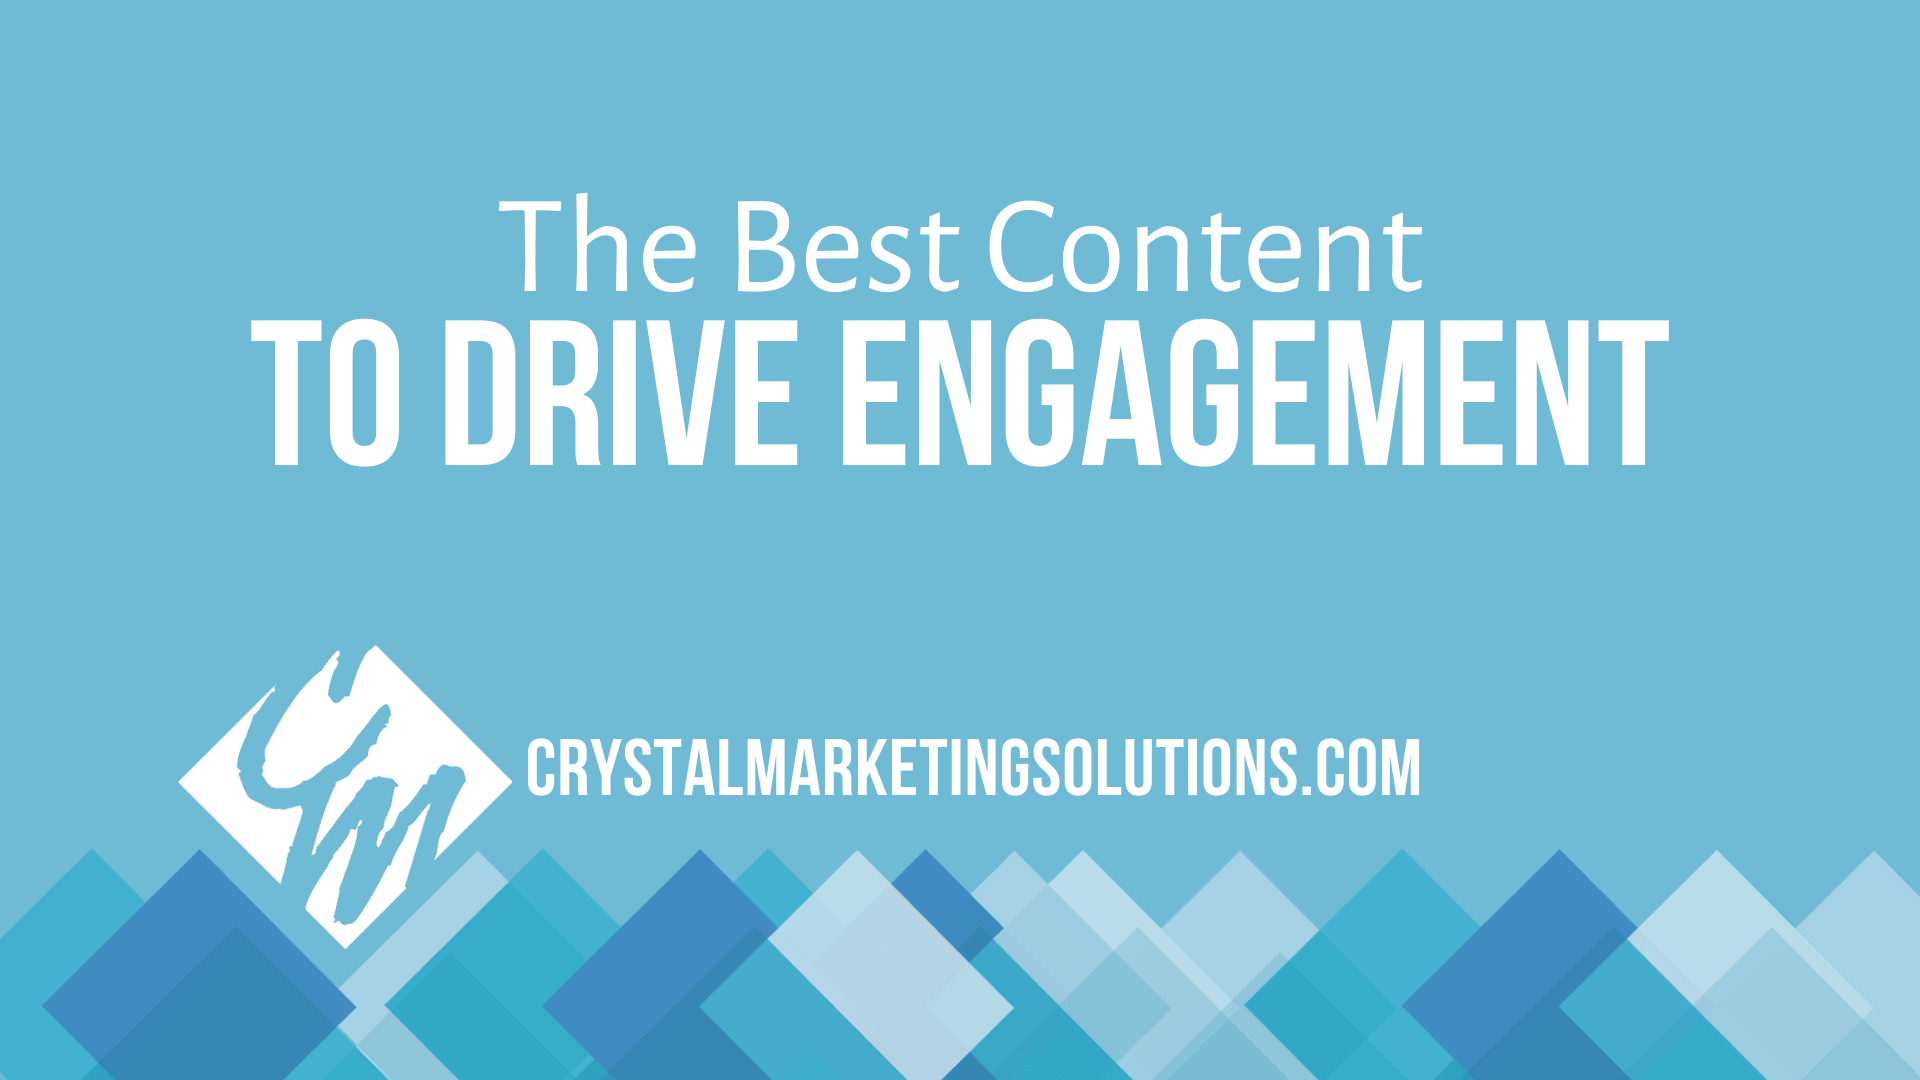 The Best Content to Drive Engagement